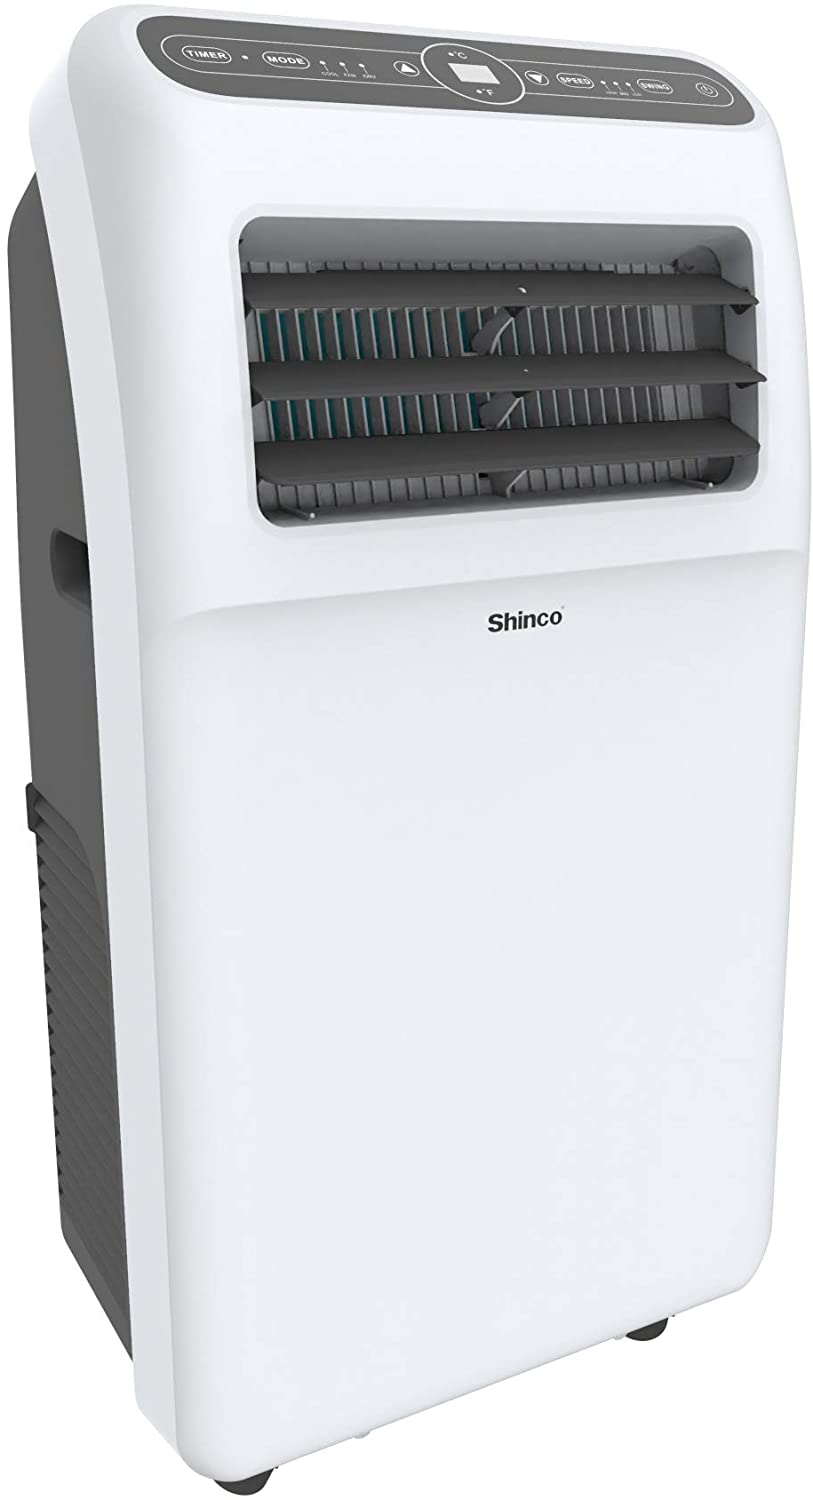 Shinco 9,700 BTU Portable Air Conditioner with Built-in Dehumidifier Function, Fan Mode, Quiet AC Unit Cools Rooms to 300 sq.ft, LED Display, Remote Control, Complete Window Mount Exhaust Kit